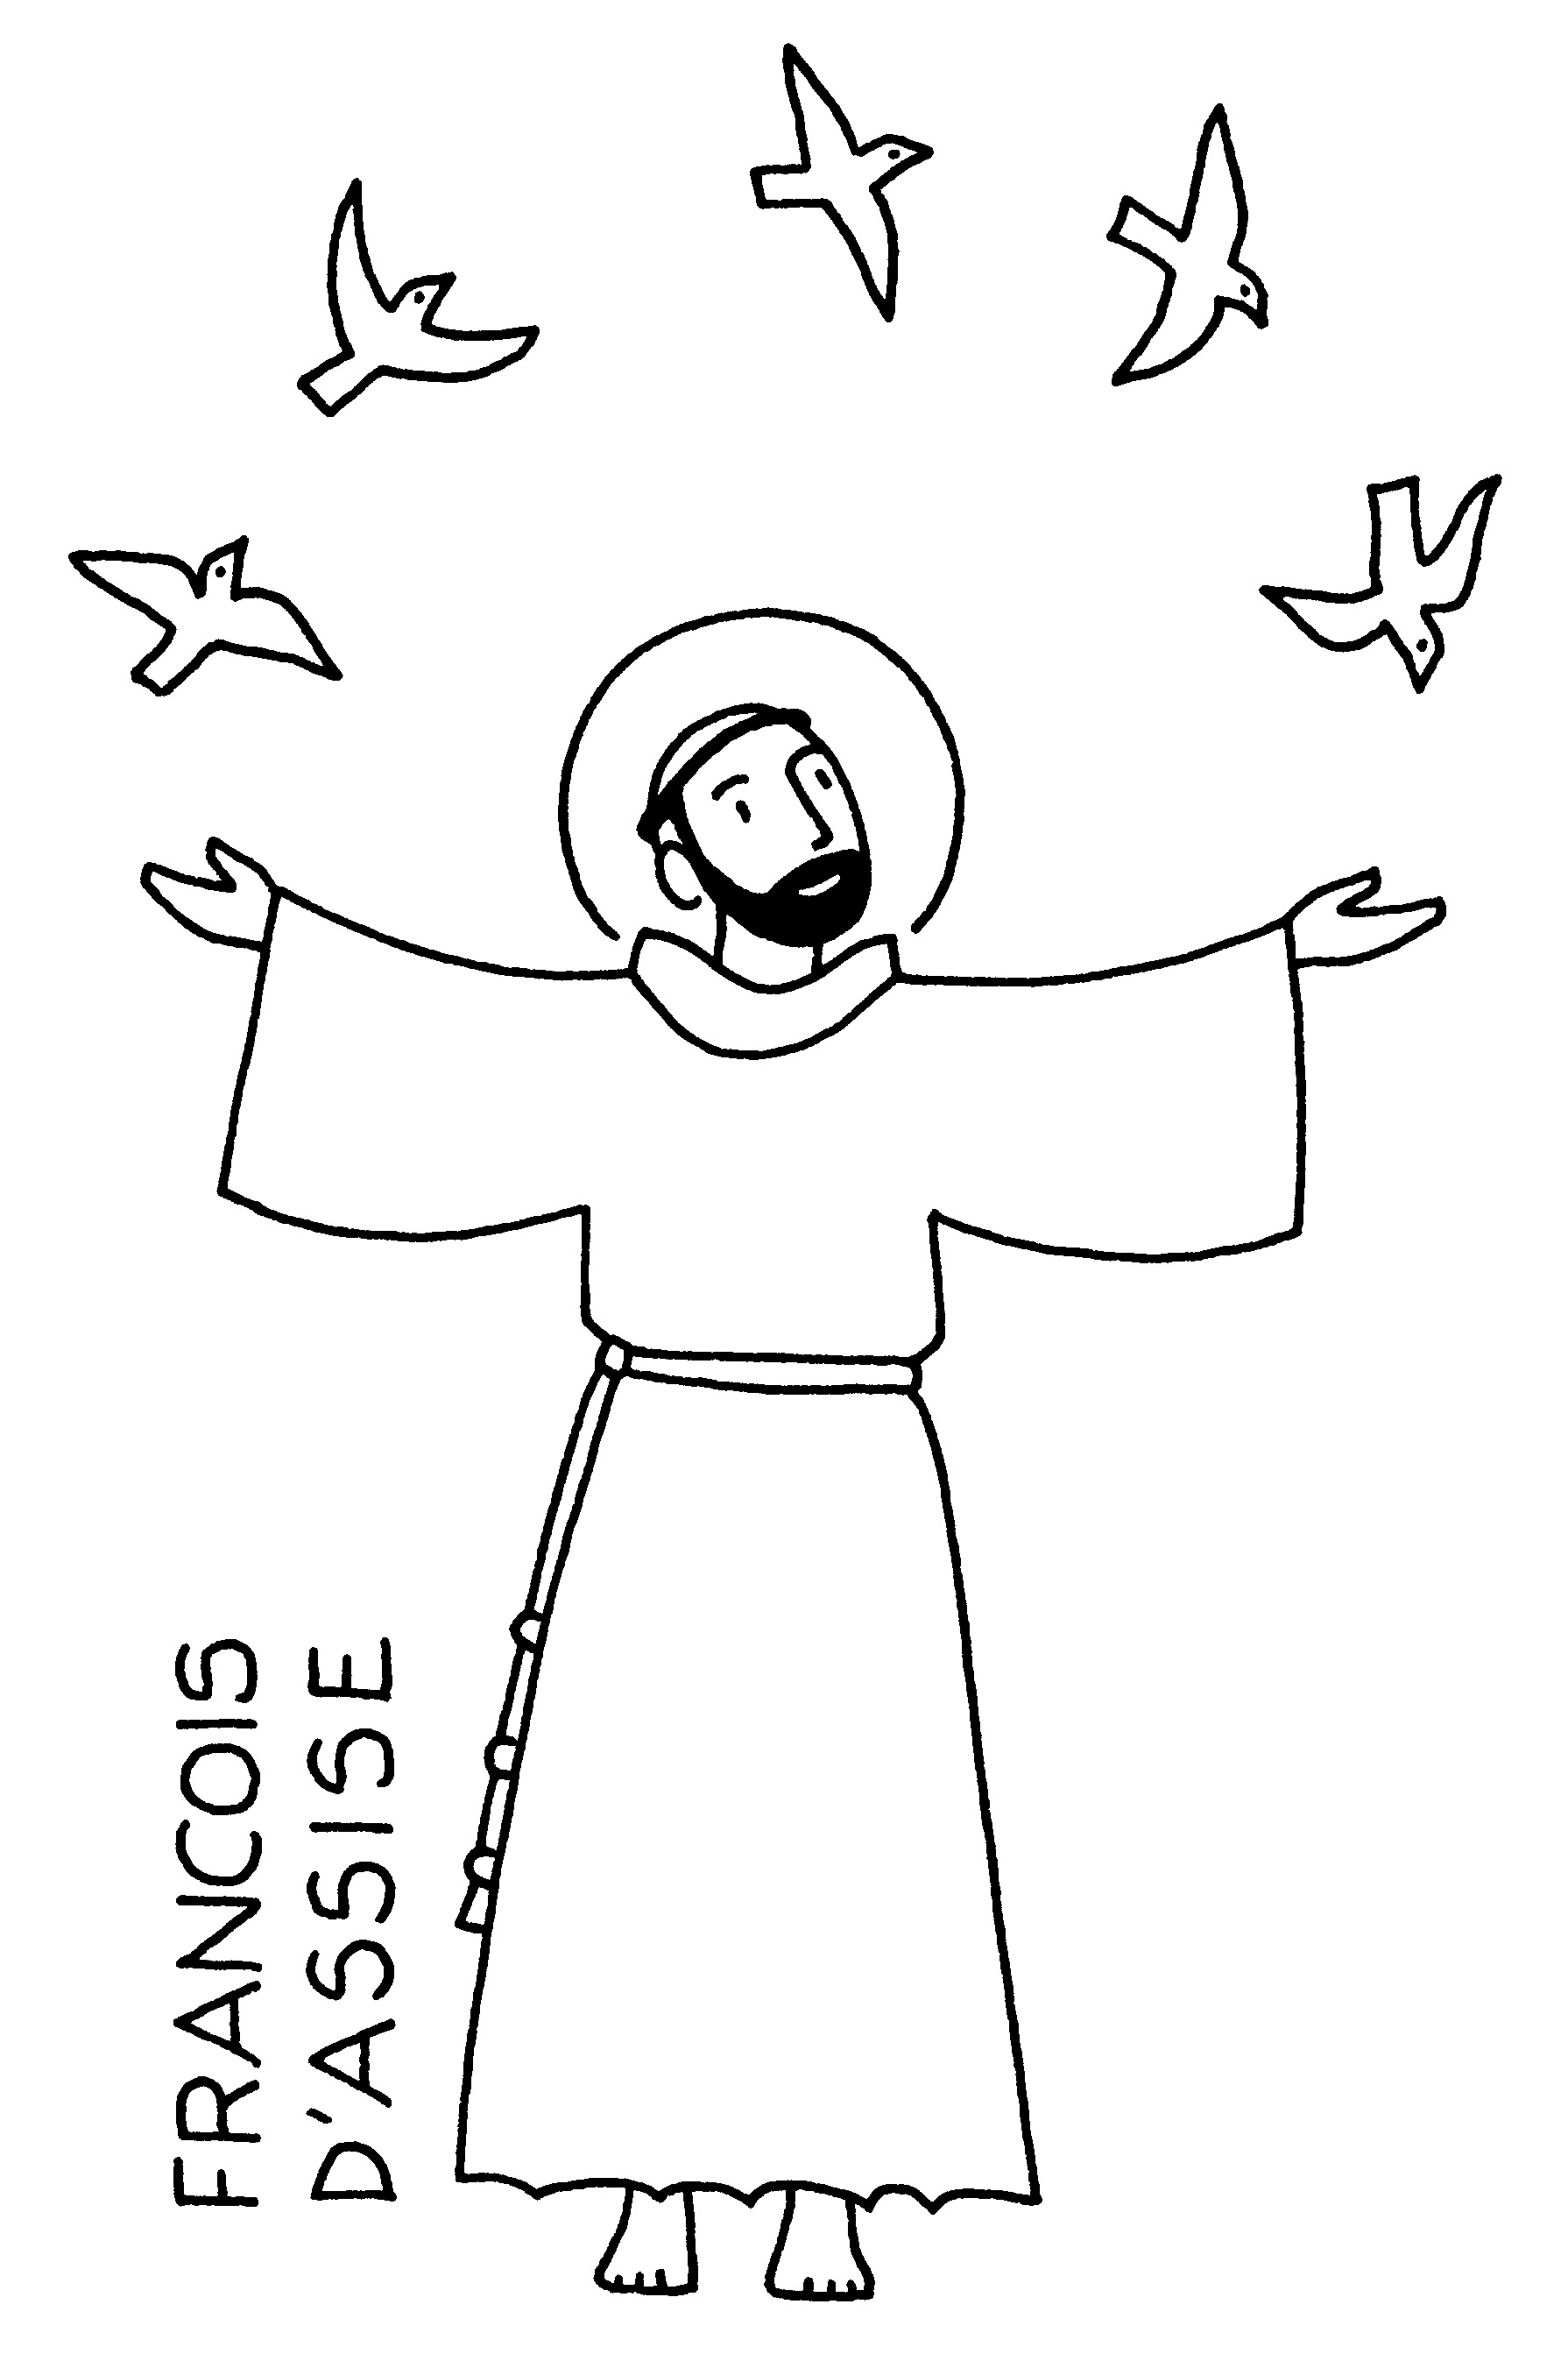 Saint Therese of Lisieux further saint francis of assisi coloring page as well saint patrick snakes in addition 618b77f97044f3be5f9edbb860a125c2  teaching religion joan of arc likewise saint peter claver 2 in addition monk reading as well saint jerome coloring page also angela merici coloring further mother teresa11 moreover saint augustine and saint monica coloring page furthermore scholastica and benedict coloring page. on printable coloring pages of saints saint benedict